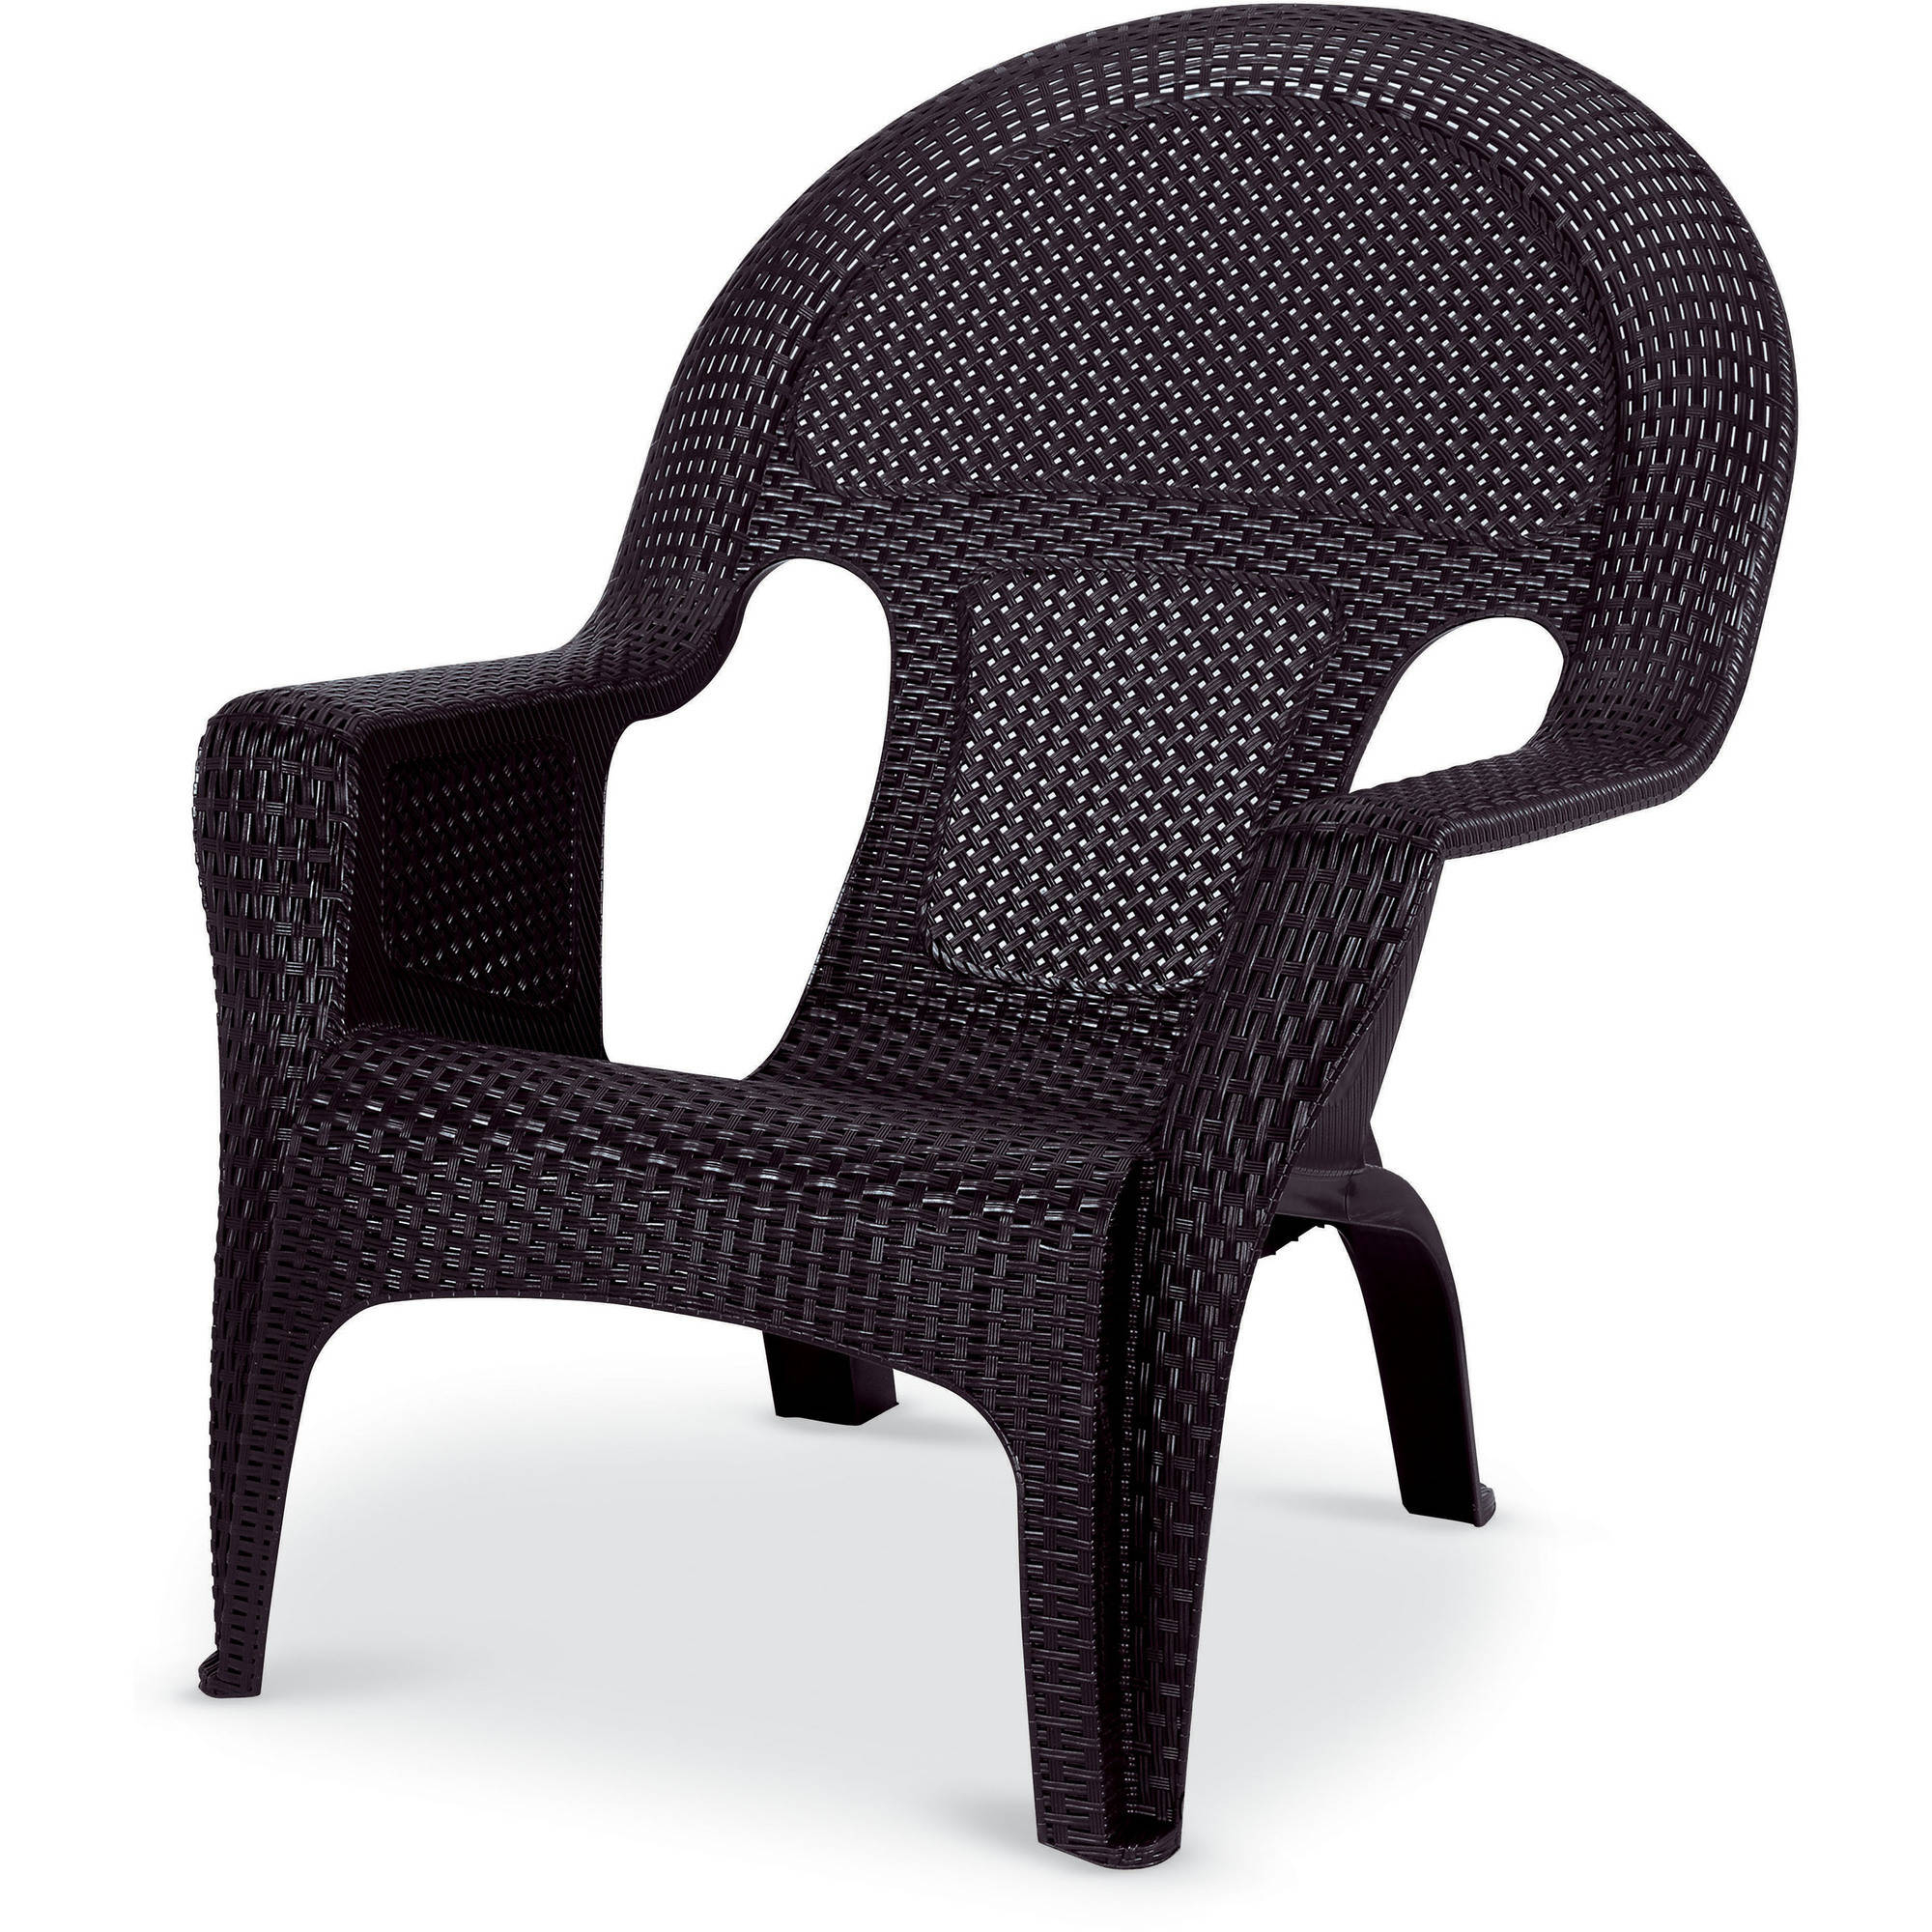 Elegant US Leisure Resin Wicker Lounge Chair, Coffee   Walmart.com